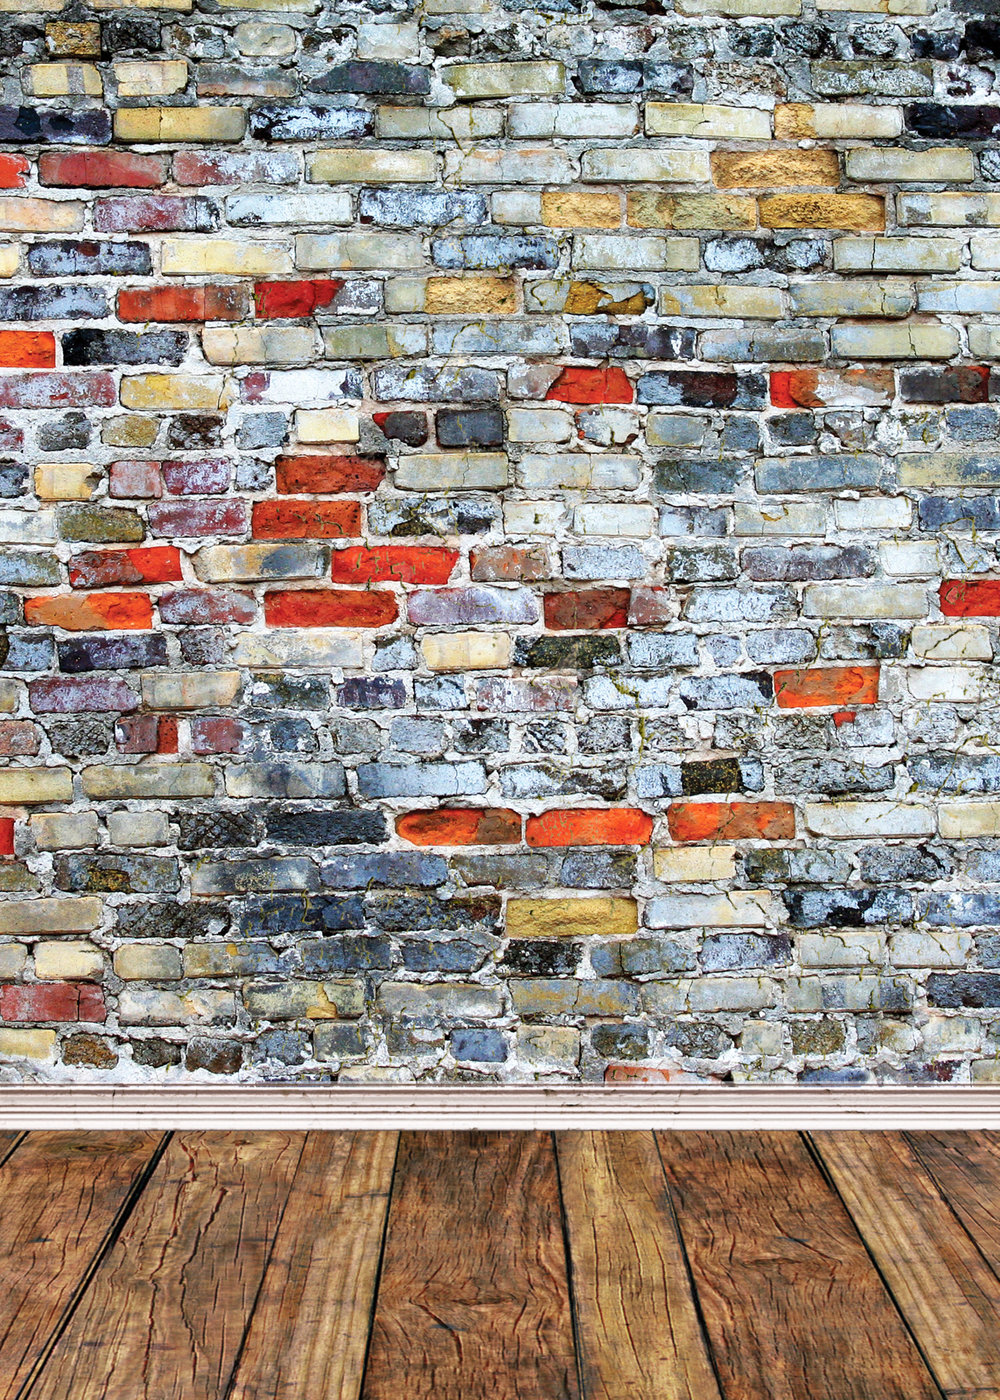 Background D - Colorful Brick